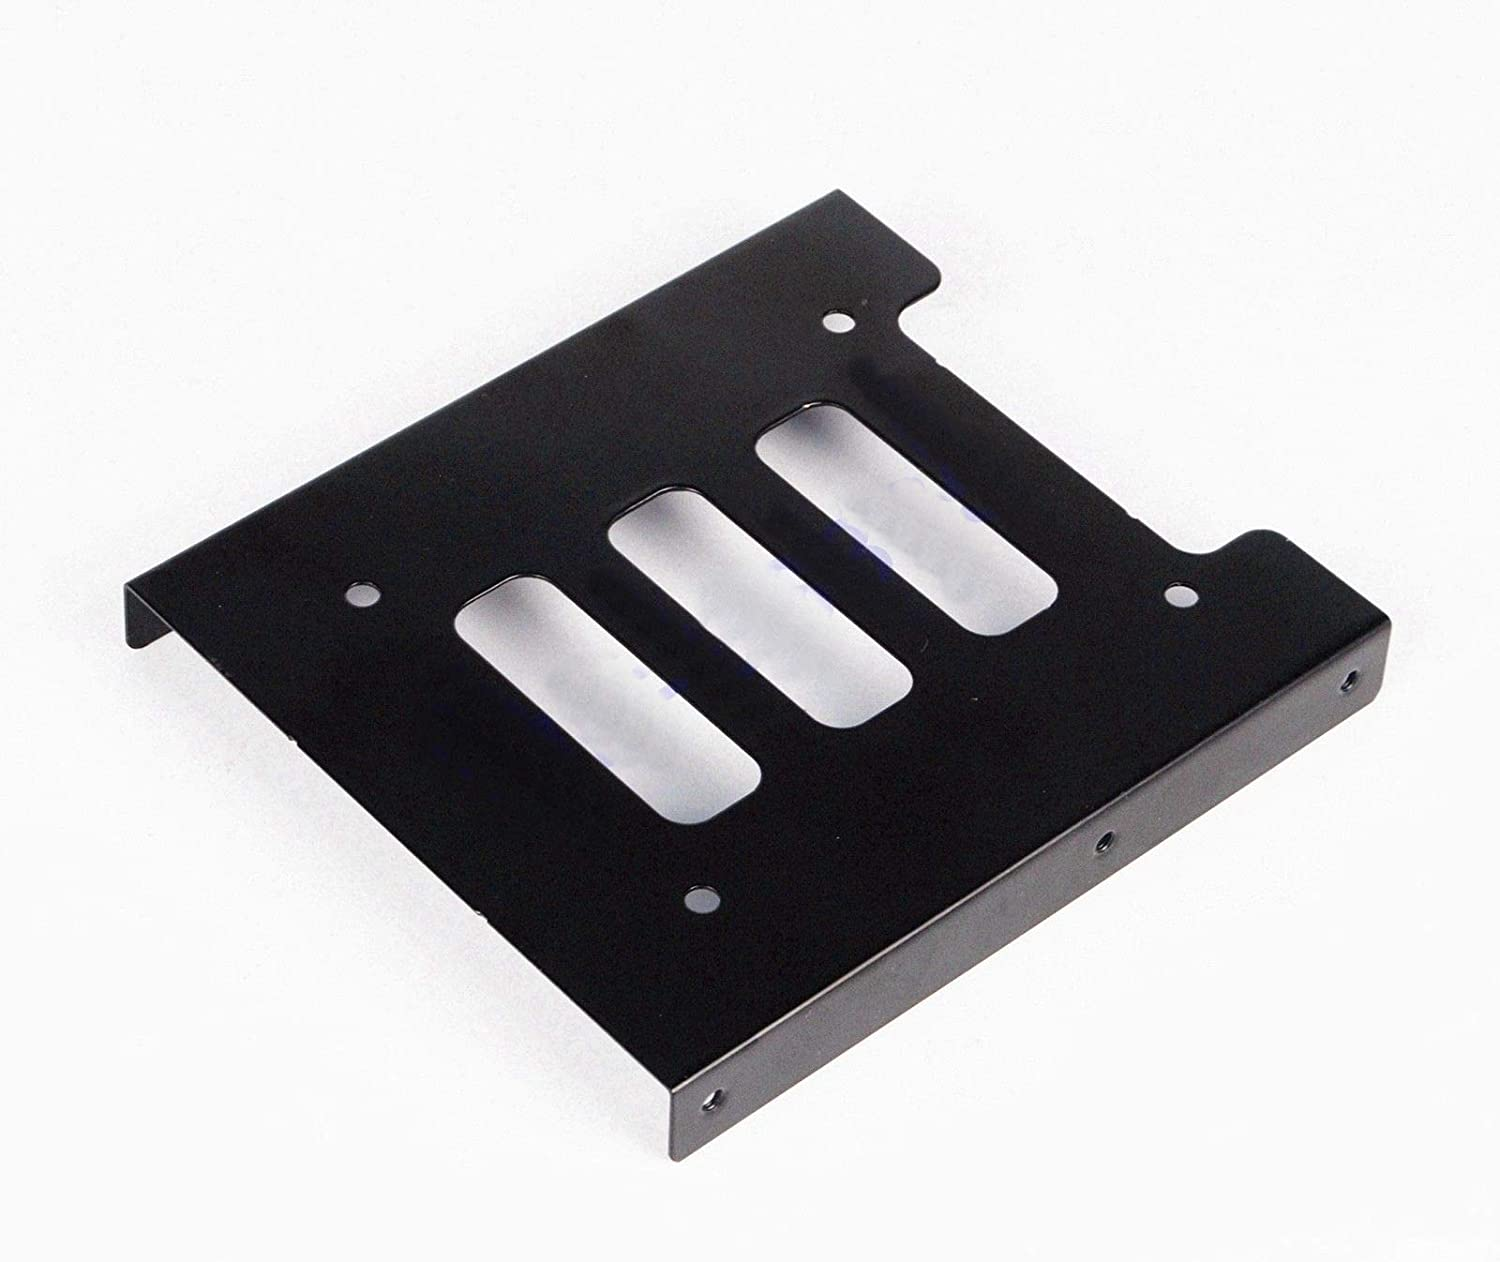 "Adapter 2.5/"" to 3.5/"" hard drive plastic bracket hdd holder mounting ssd black GX"